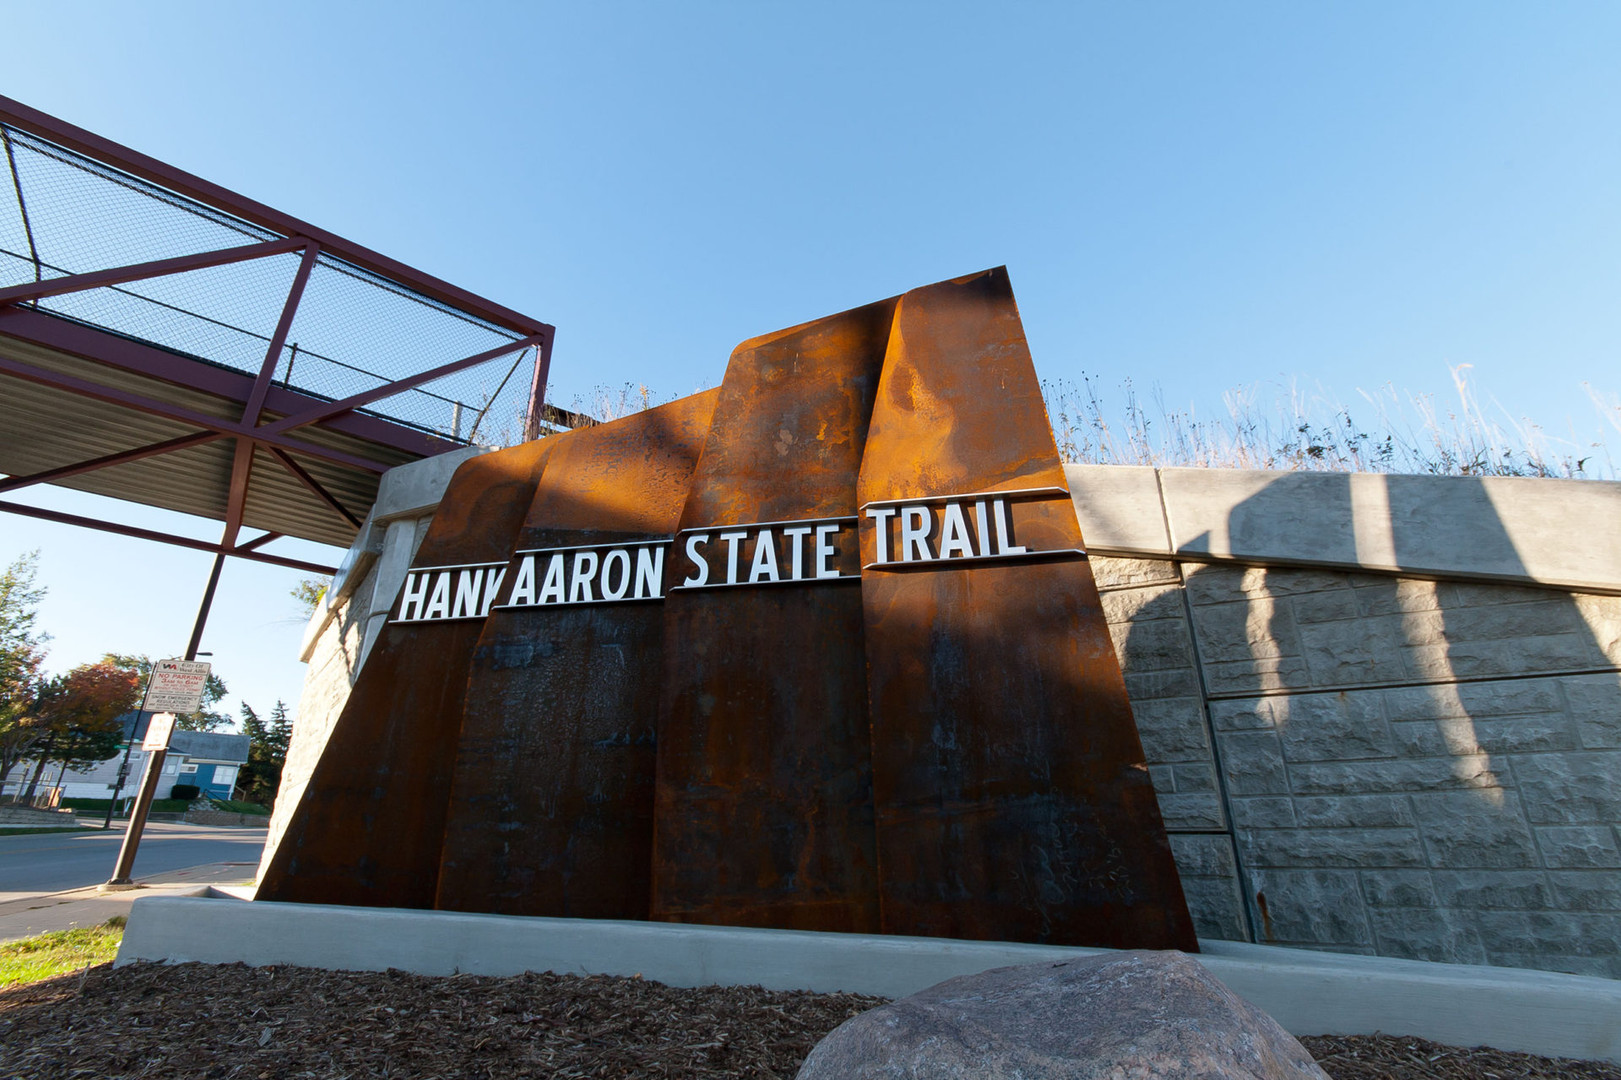 Hank Aaron State Trail Monument